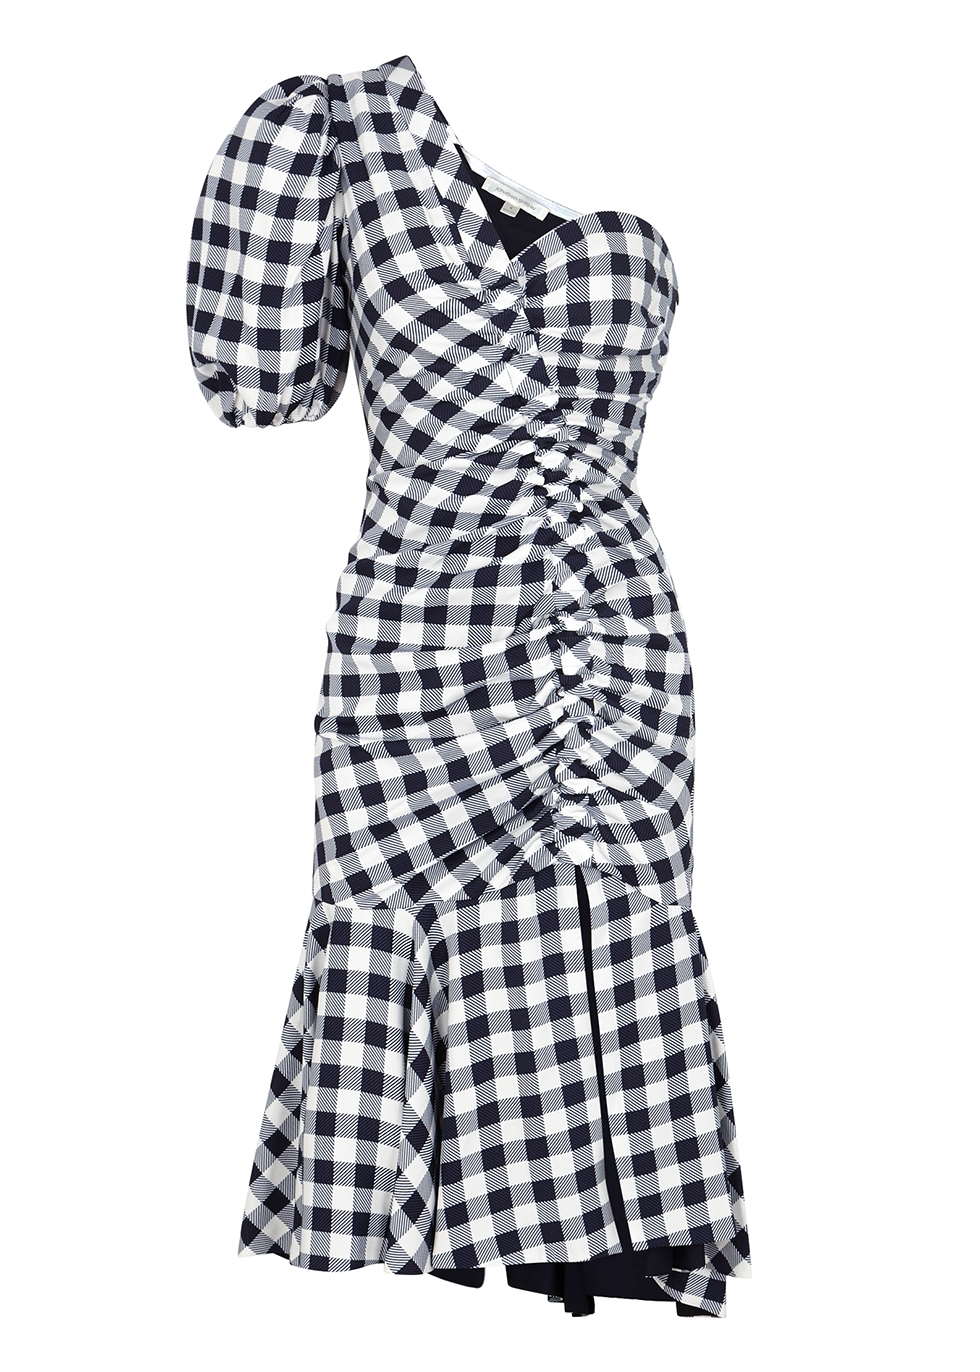 Gingham ruched one-shoulder dress - Jonathan Simkhai